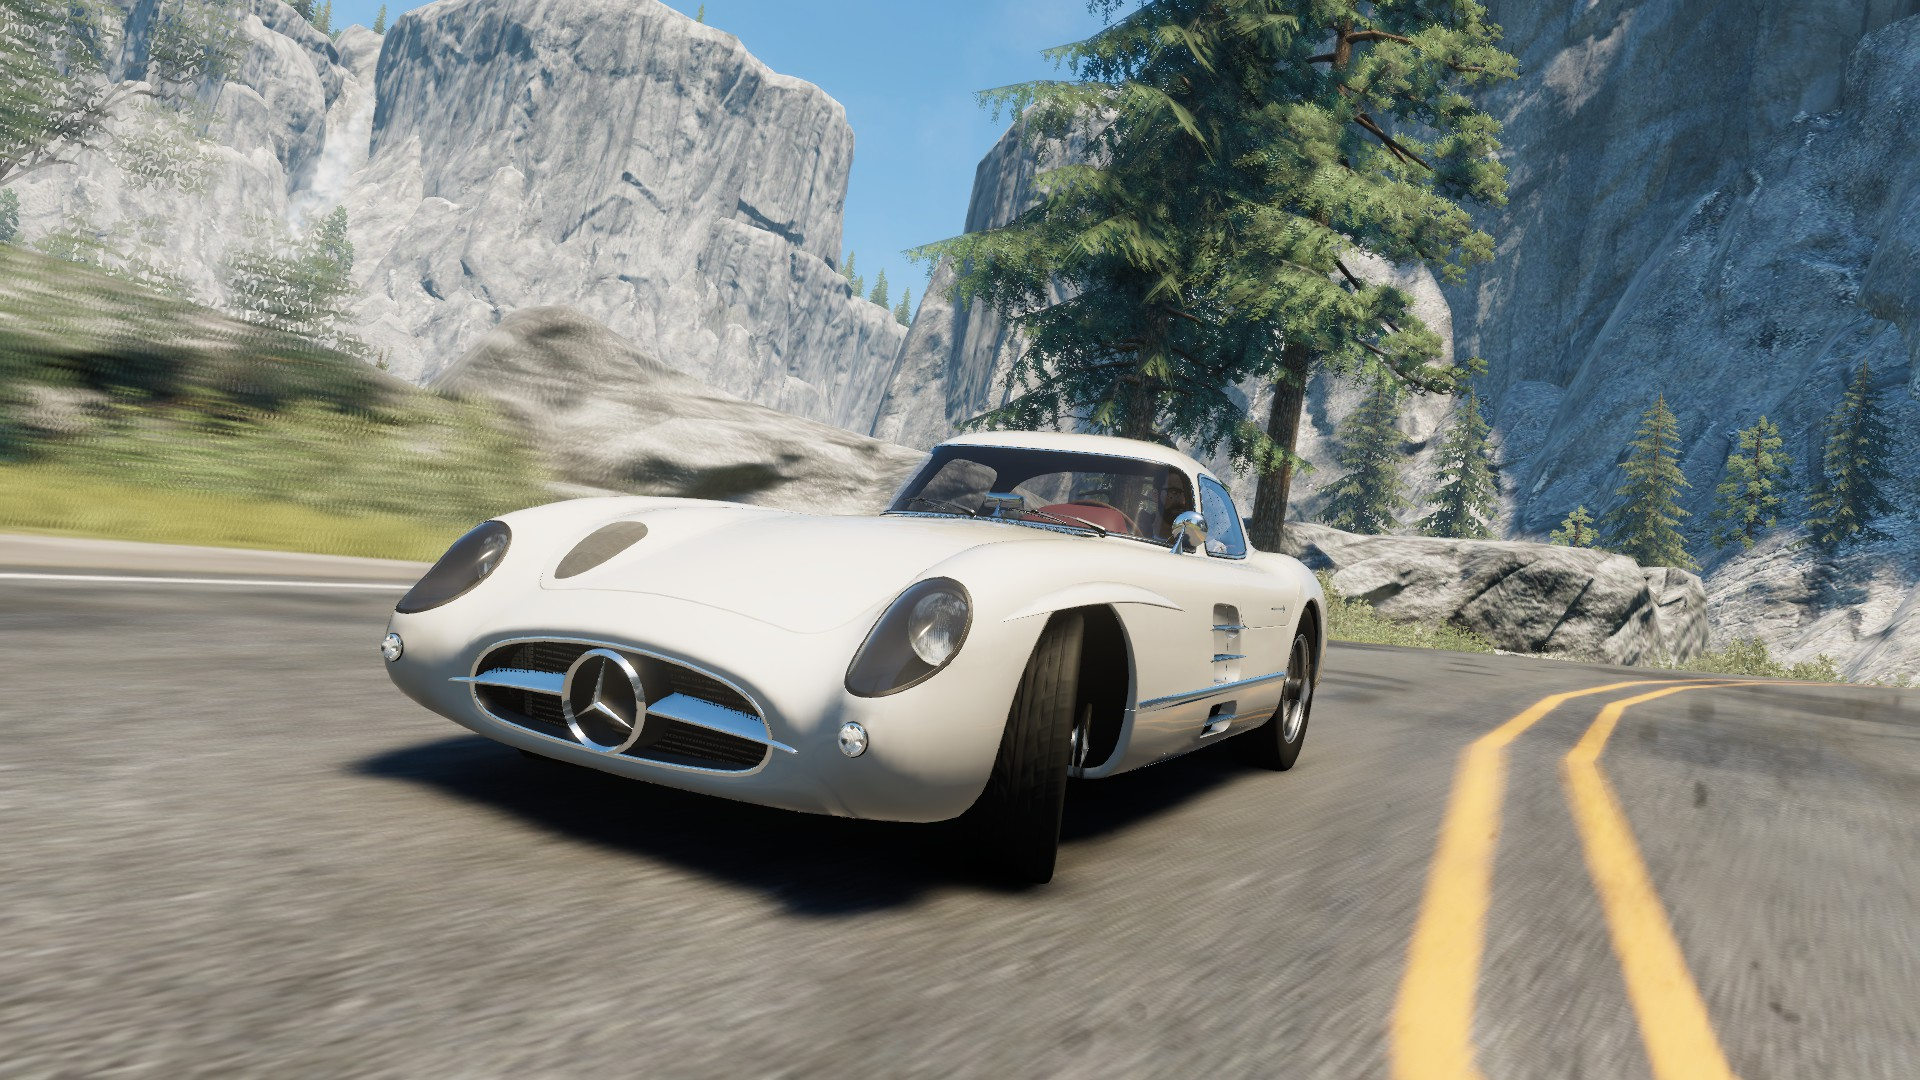 Mercedes benz 300 slr uhlenhaut coup w196 the crew for Mercedes benz 300 slr